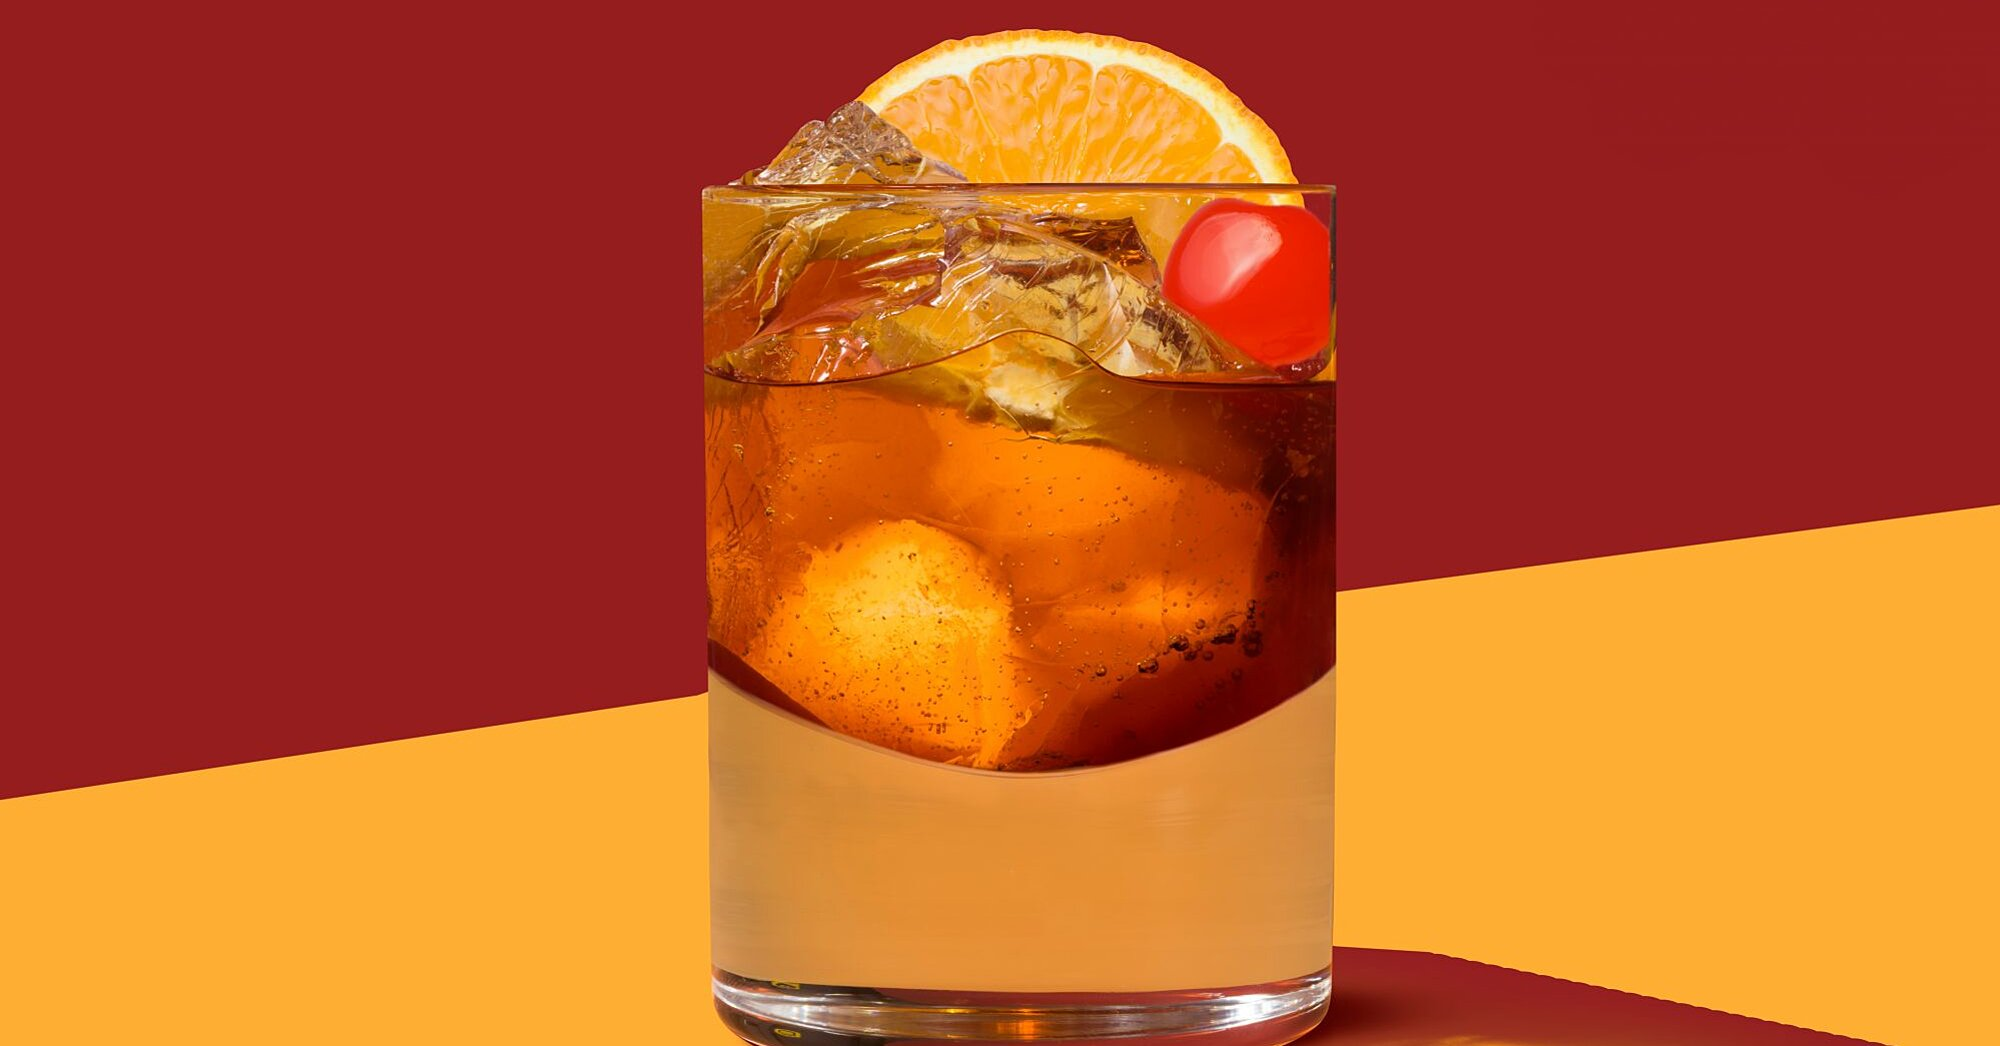 How to Make a Classic Old Fashioned Cocktail at Home